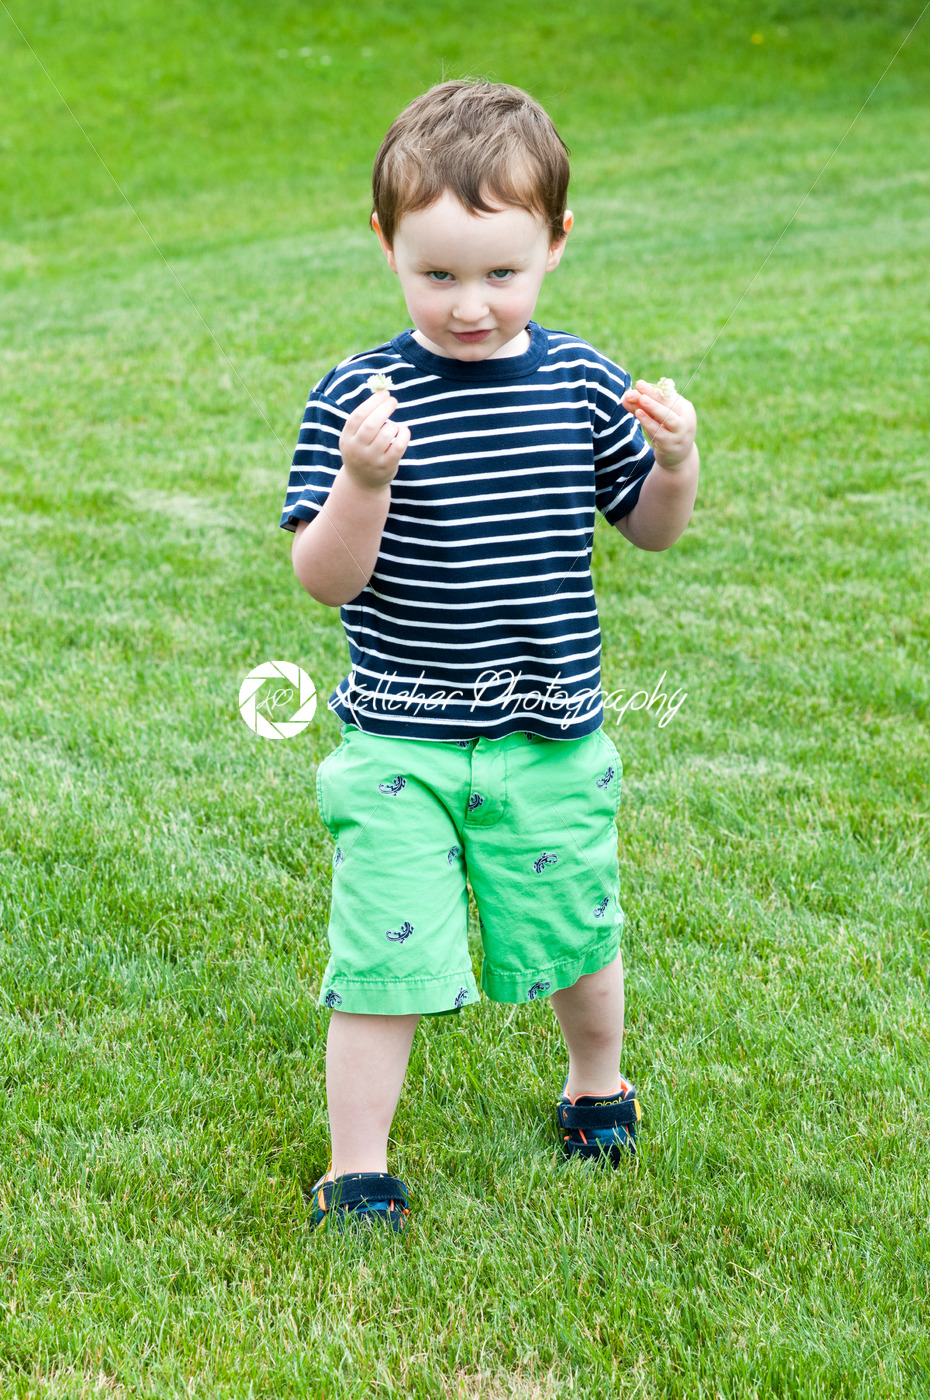 Portrait of a cute adorable little boy child running on grass - Kelleher Photography Store